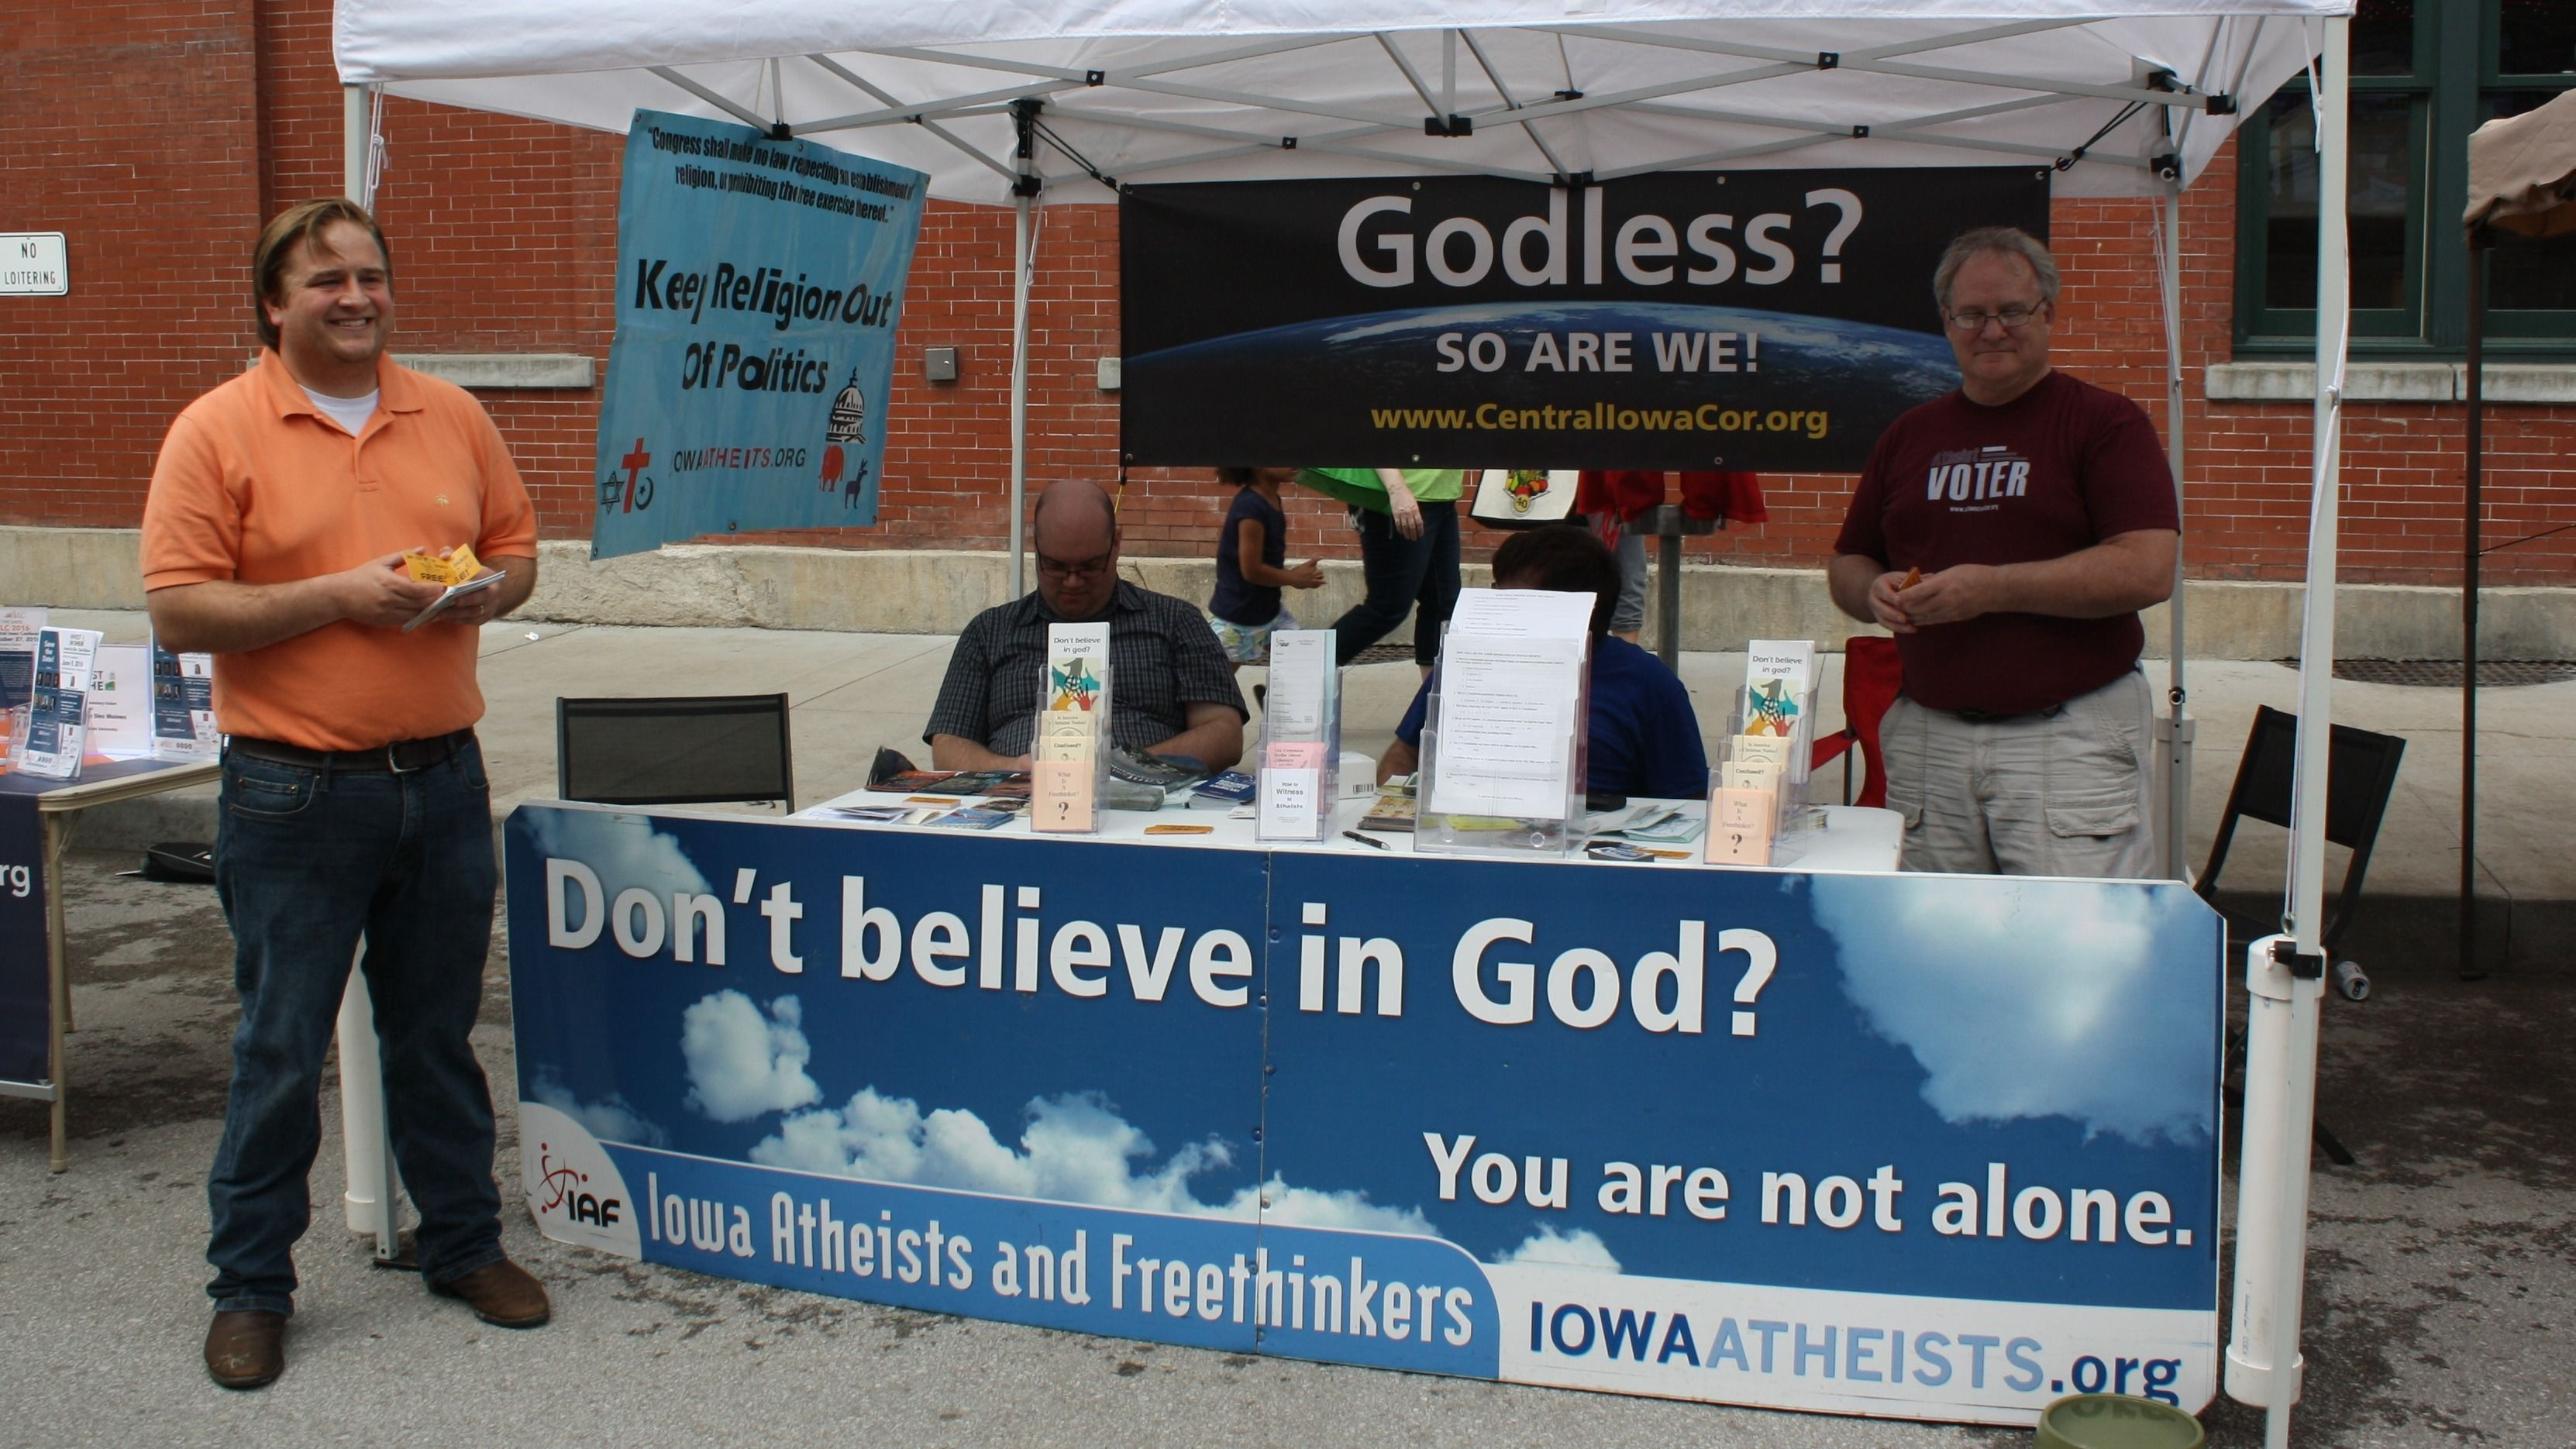 Iowa Atheists and Freethinkers